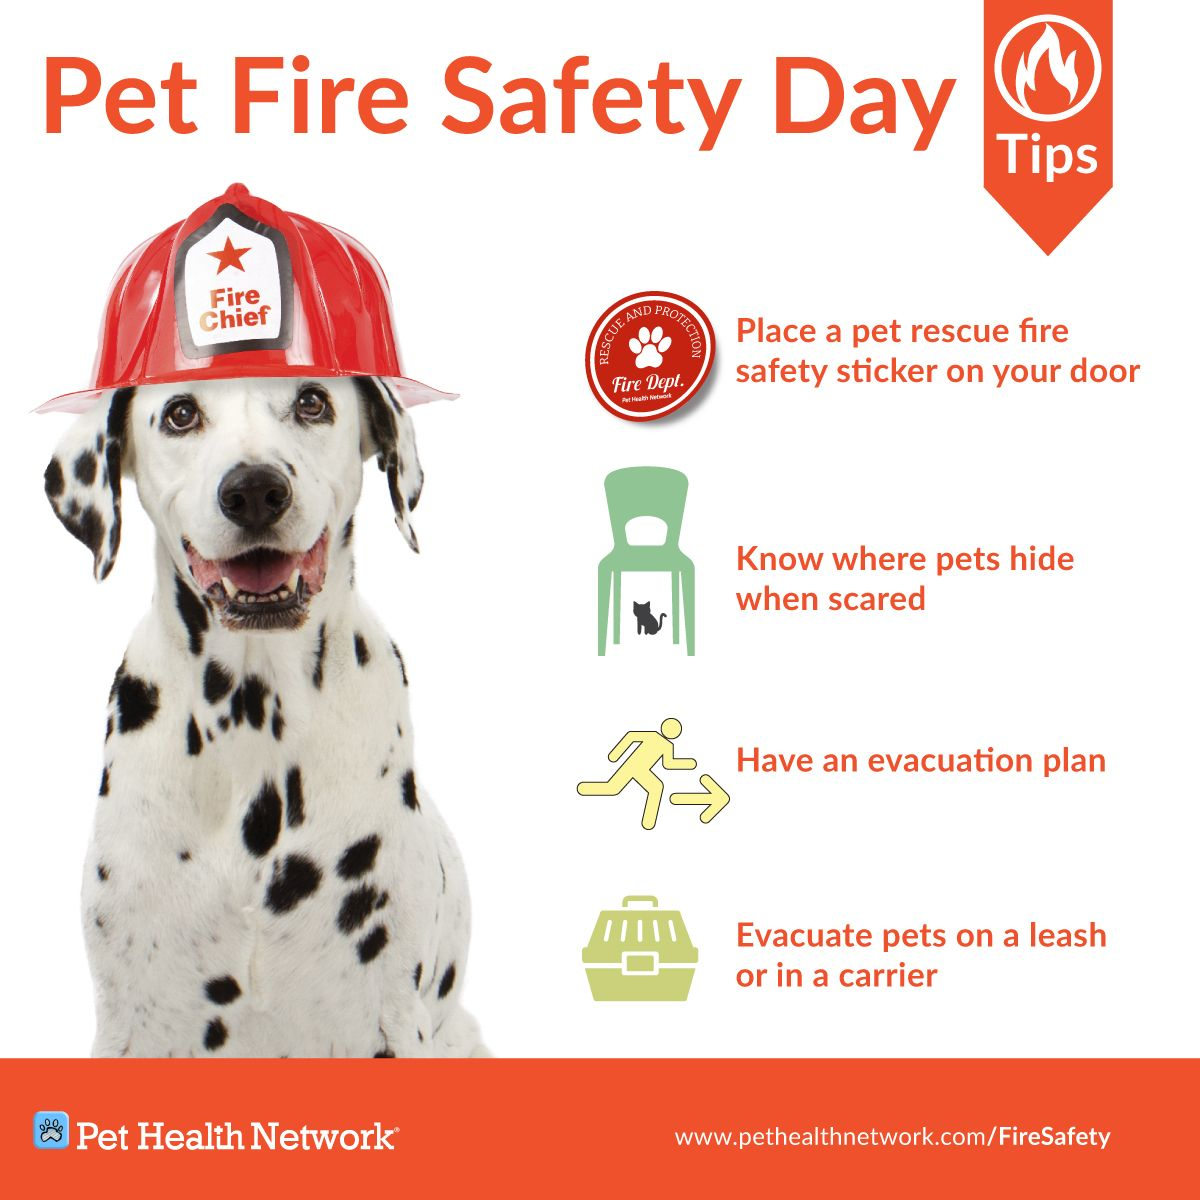 Pet Fire Safety Day! Here's a few tips to keep your